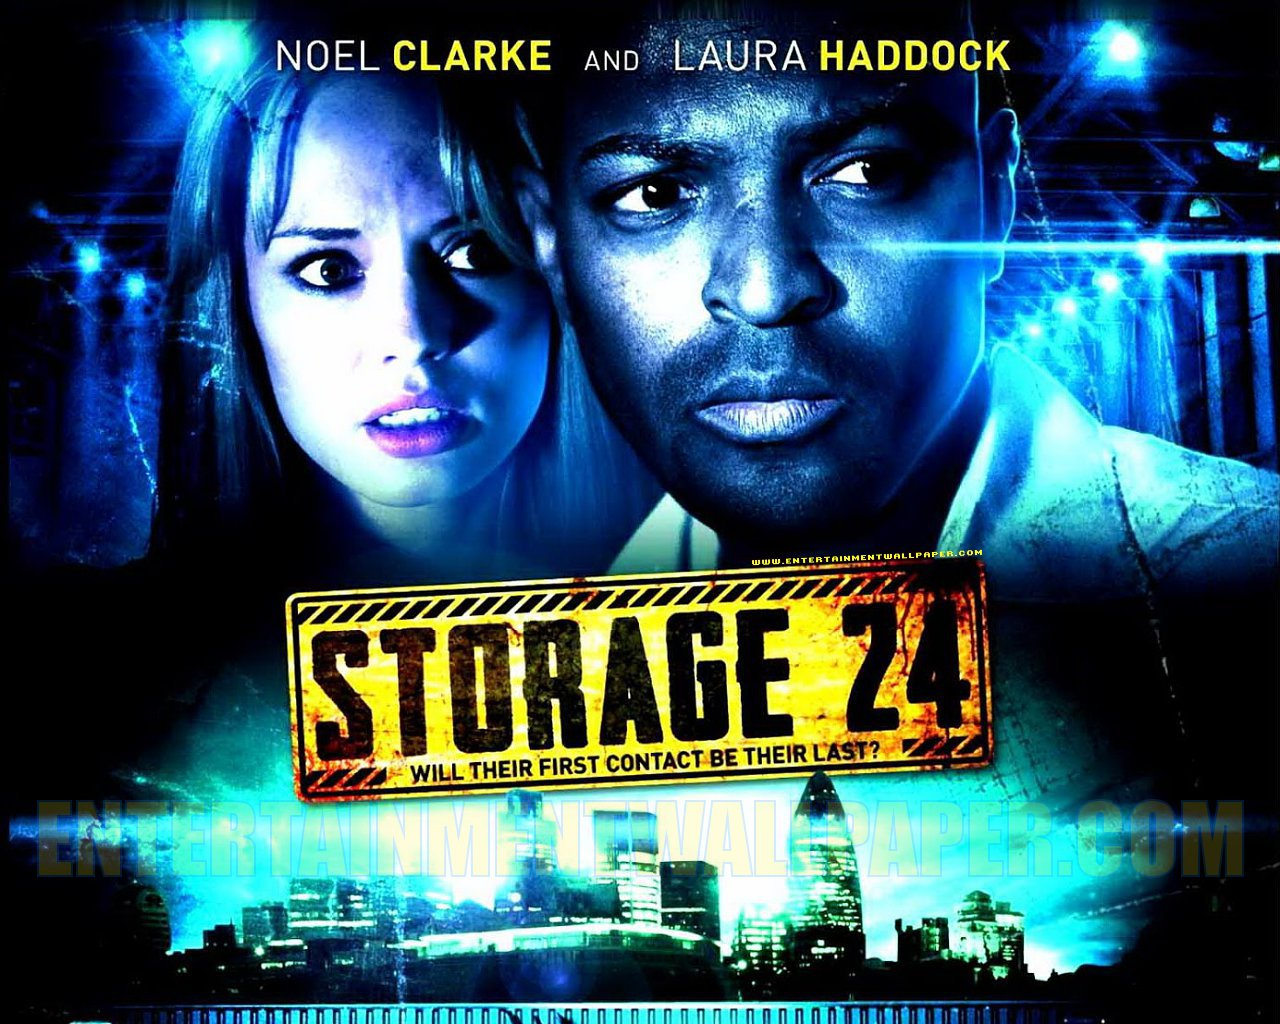 I Watched Storage 24 Which Reminds Me Another Movie Watch Last Year Called The Der Albeit Diffe Stories It Really Look Similar In Some